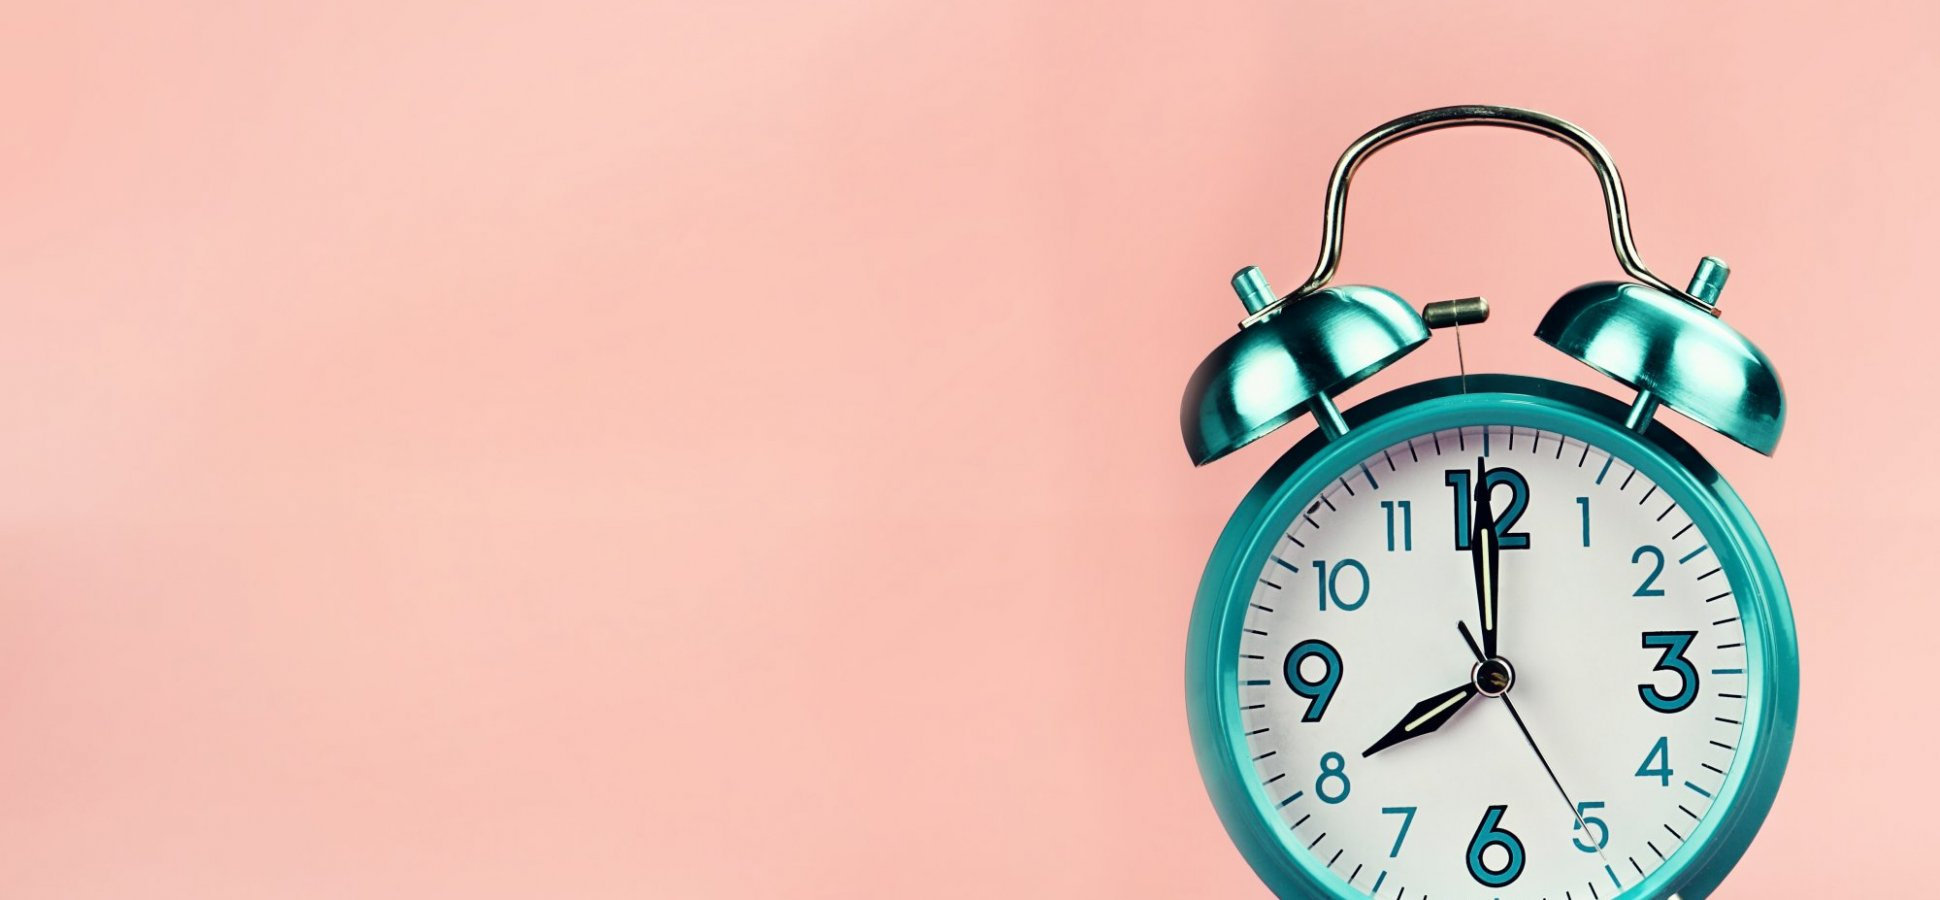 3 New Ways to Manage Your Time That'll Give You Hours Back Each Day